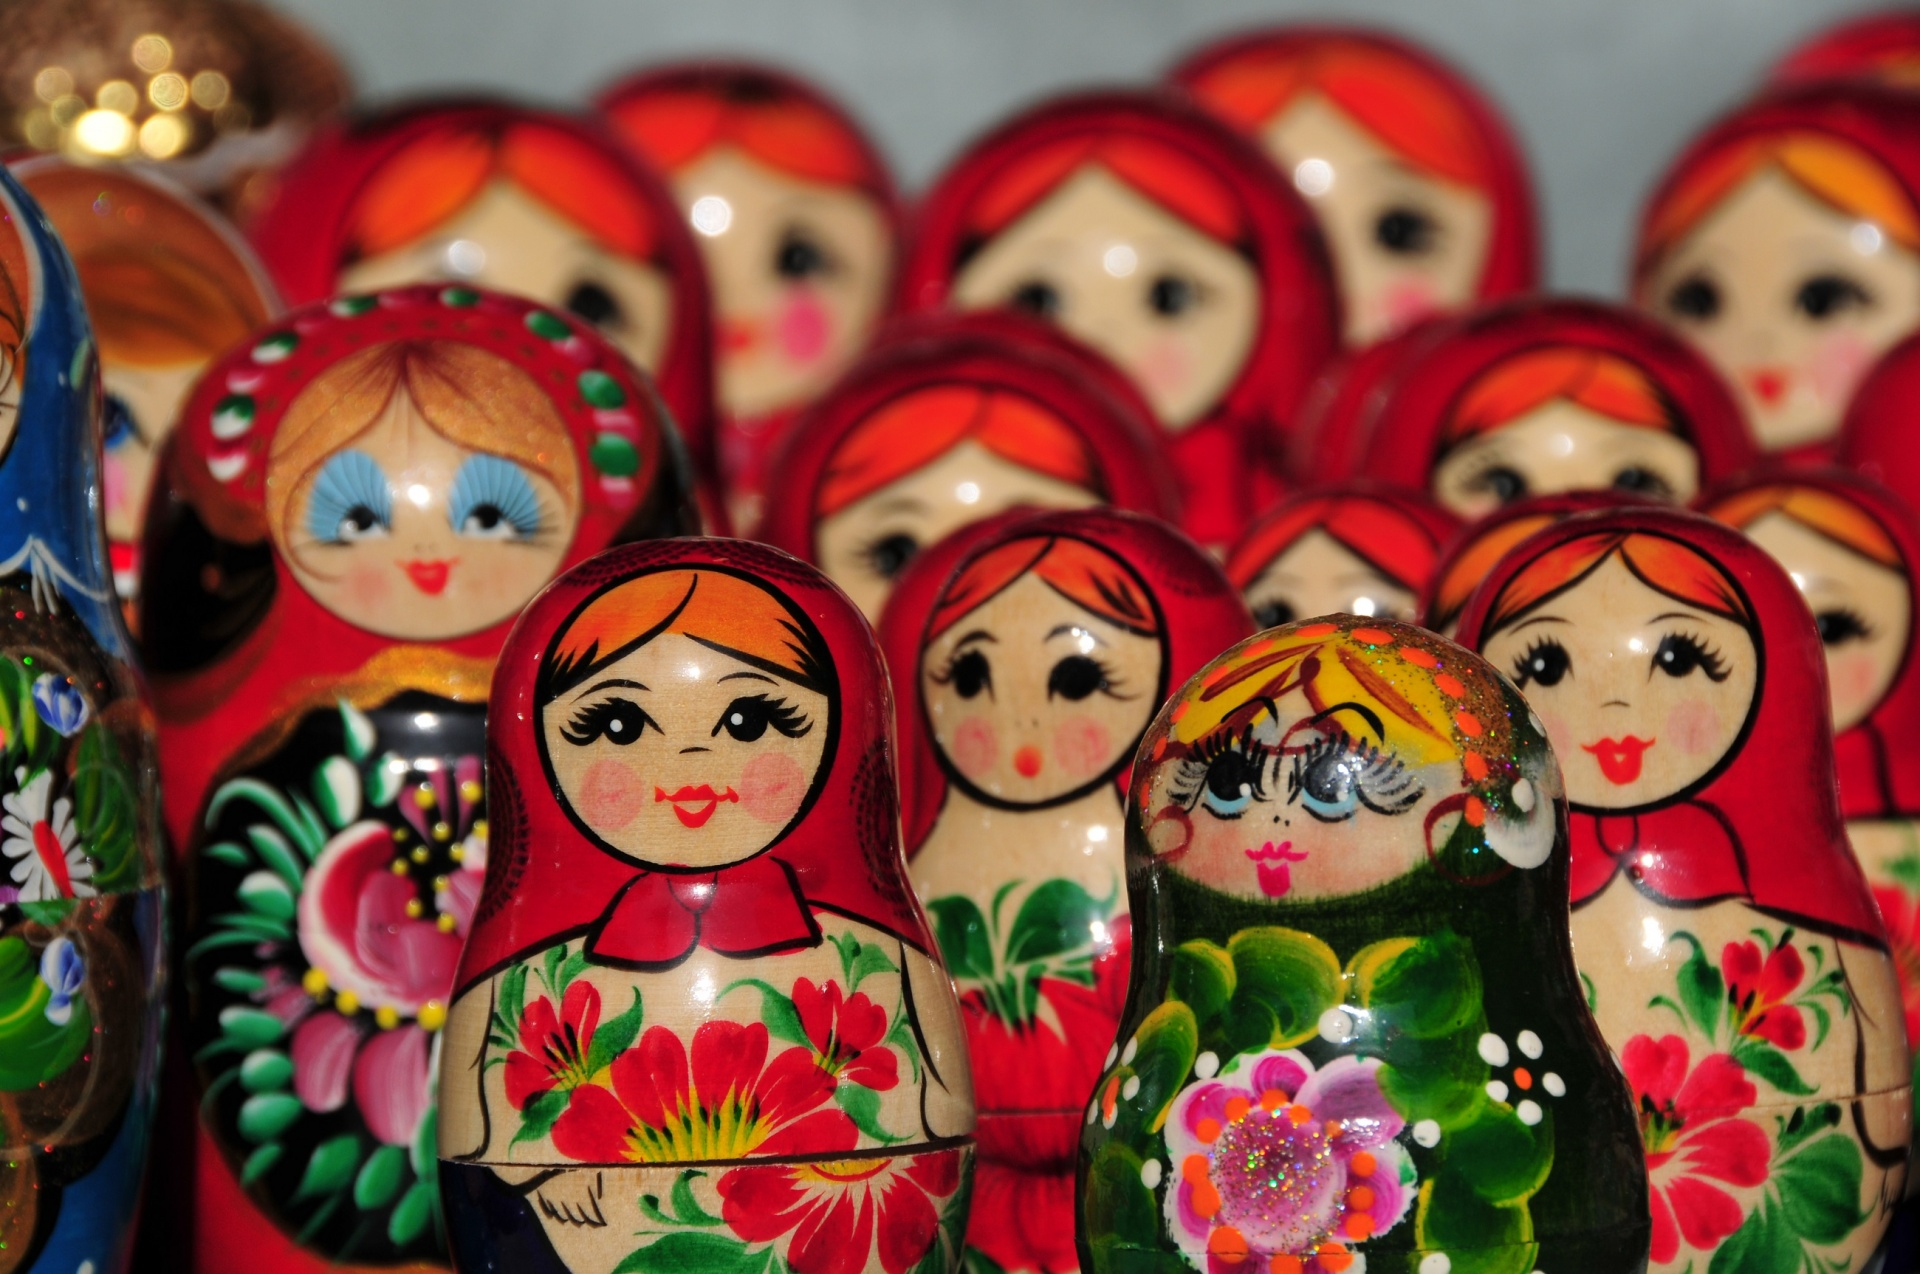 colorful-nesting-matryoshka-dolls